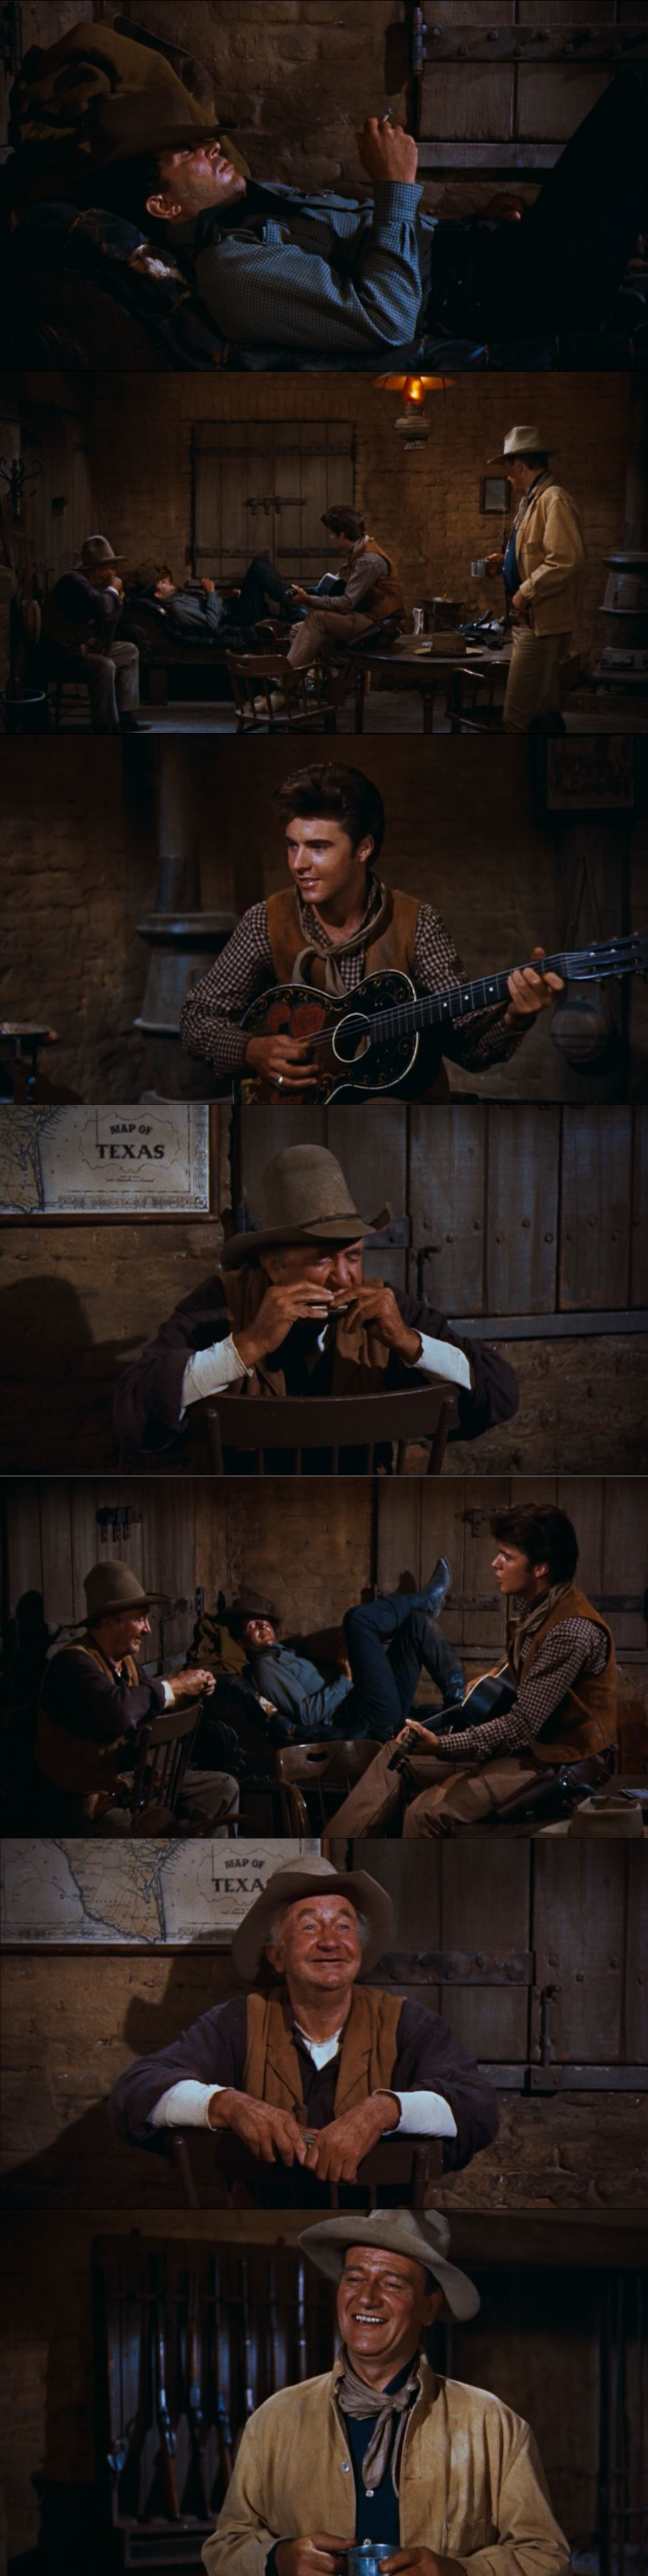 """A great musical moment in a non-musical. Dean Martin and Ricky Nelson singing """"My Rifle, My Pony, and Me"""" and """"Come Along Home, Cindy"""" with the company of Walter Brennan's harmonica and voice. The only one in the group not singing is John Wayne. Rio Bravo 1959"""